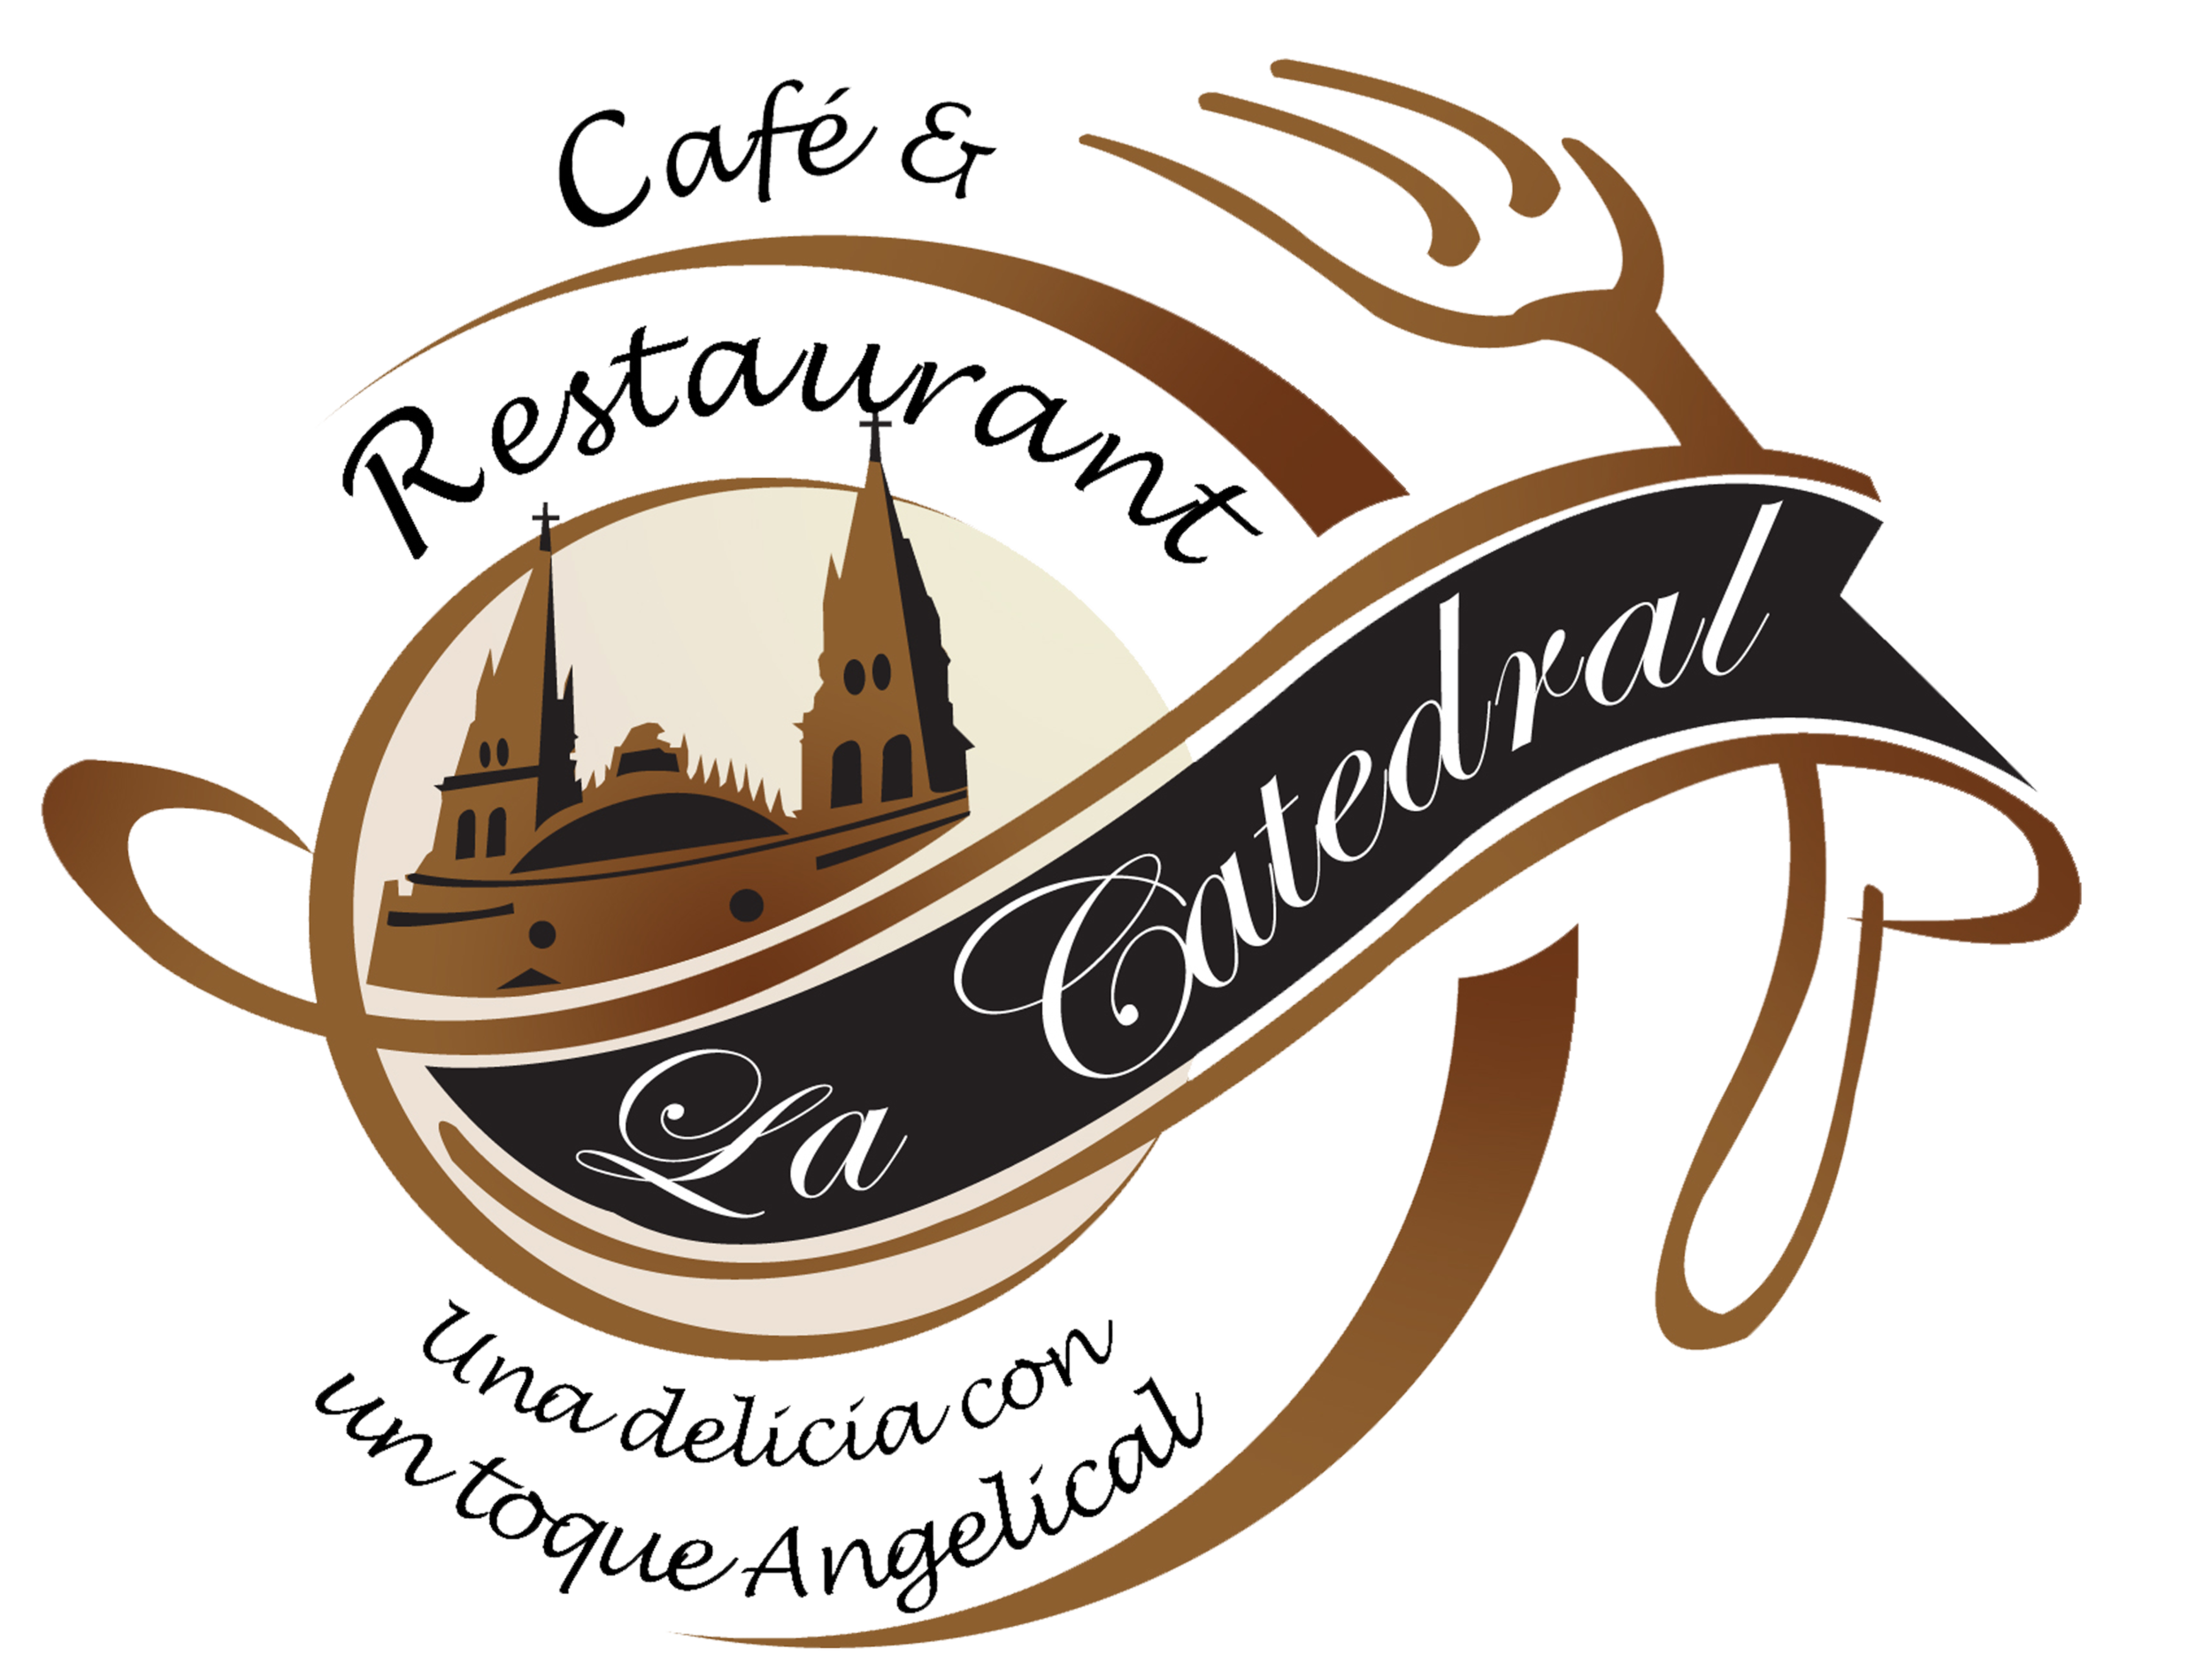 La Catedral Cafe Logo